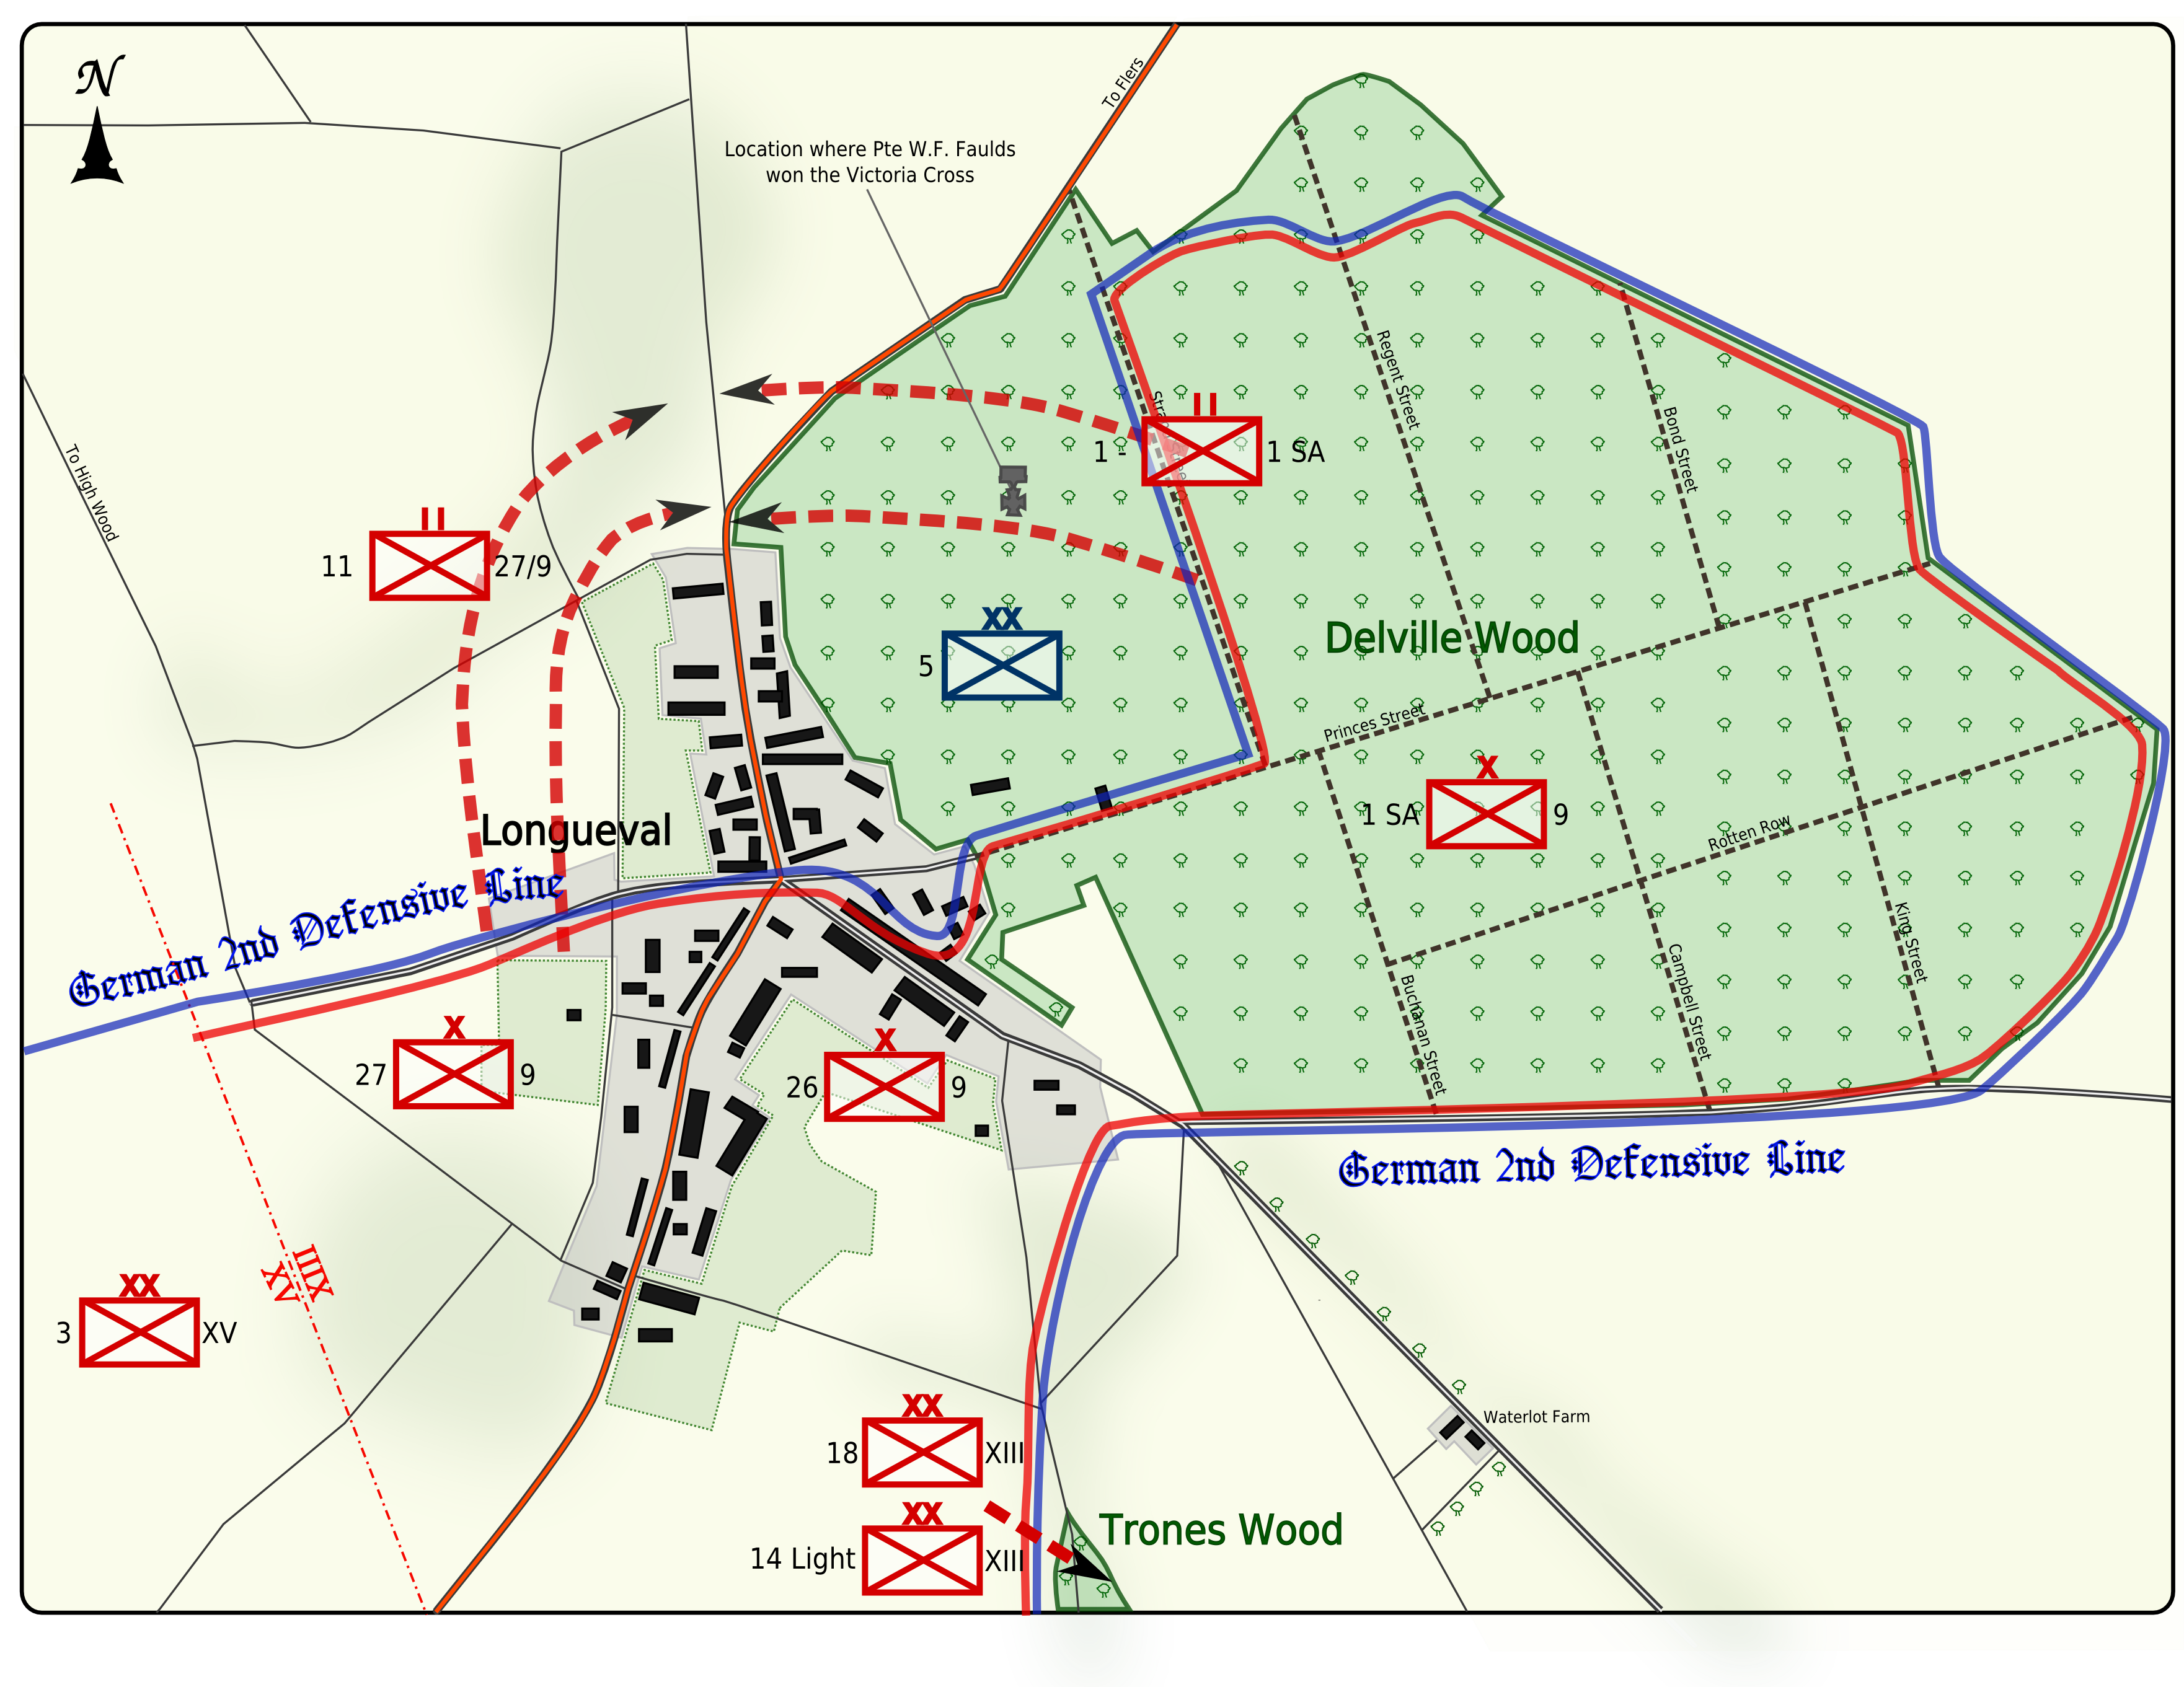 Battle of the Somme – a summary